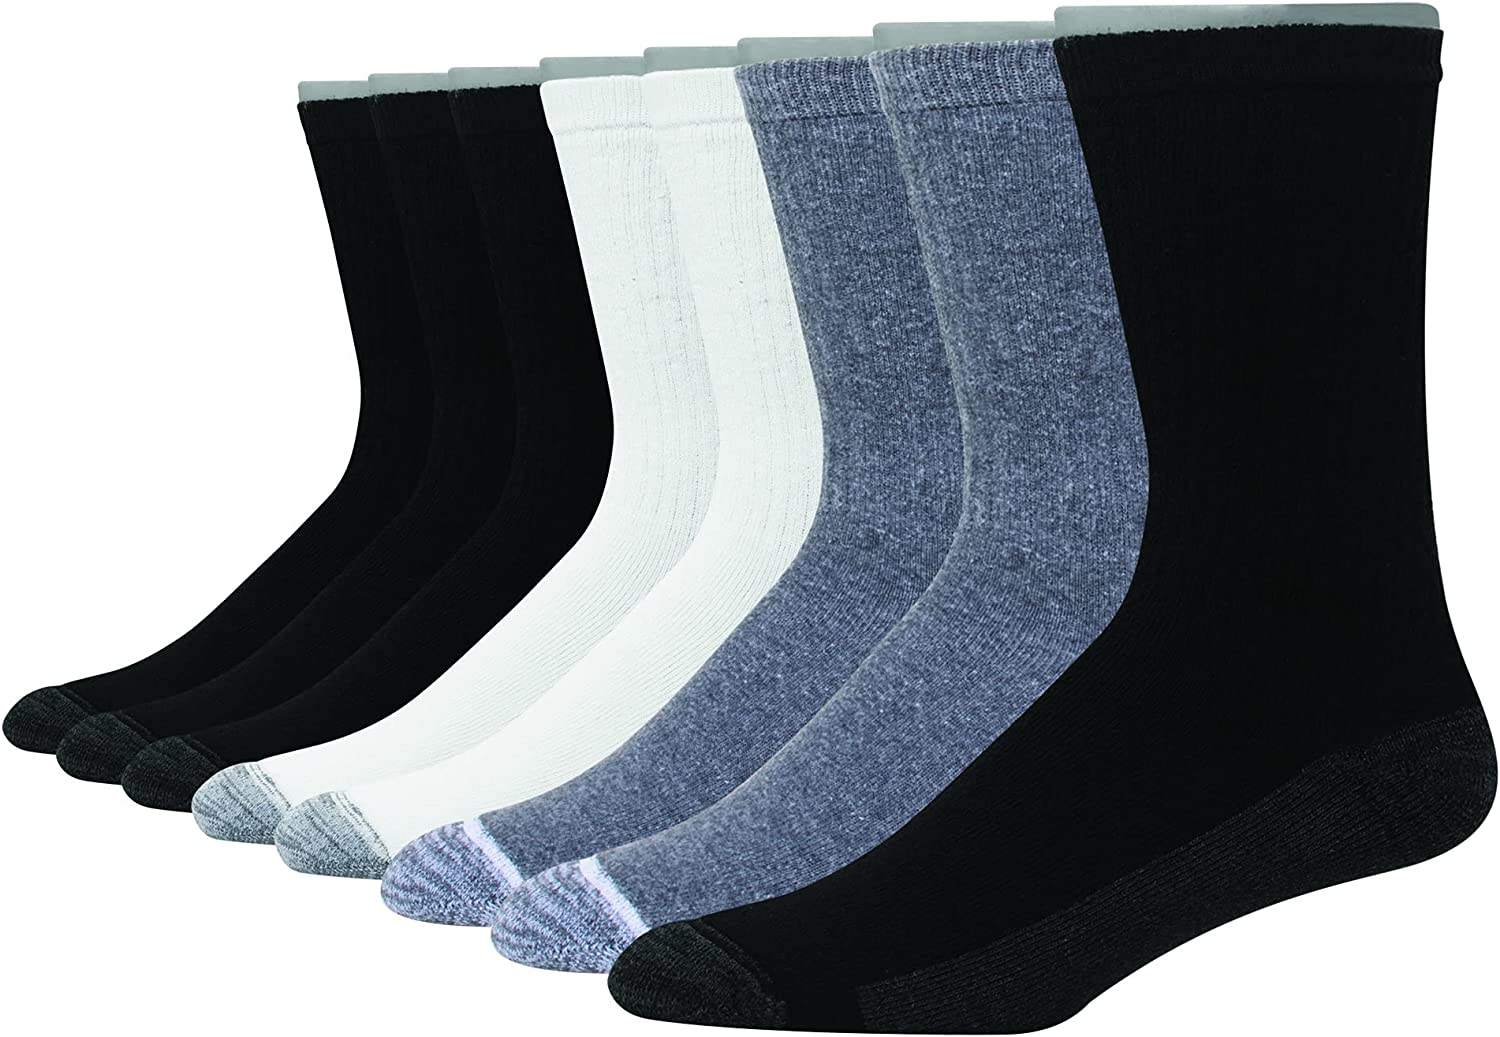 Hanes Ultimate Men Ultra Cushion Freshiq Odor Control With Wicking Crew Socks, 8-pair Pack